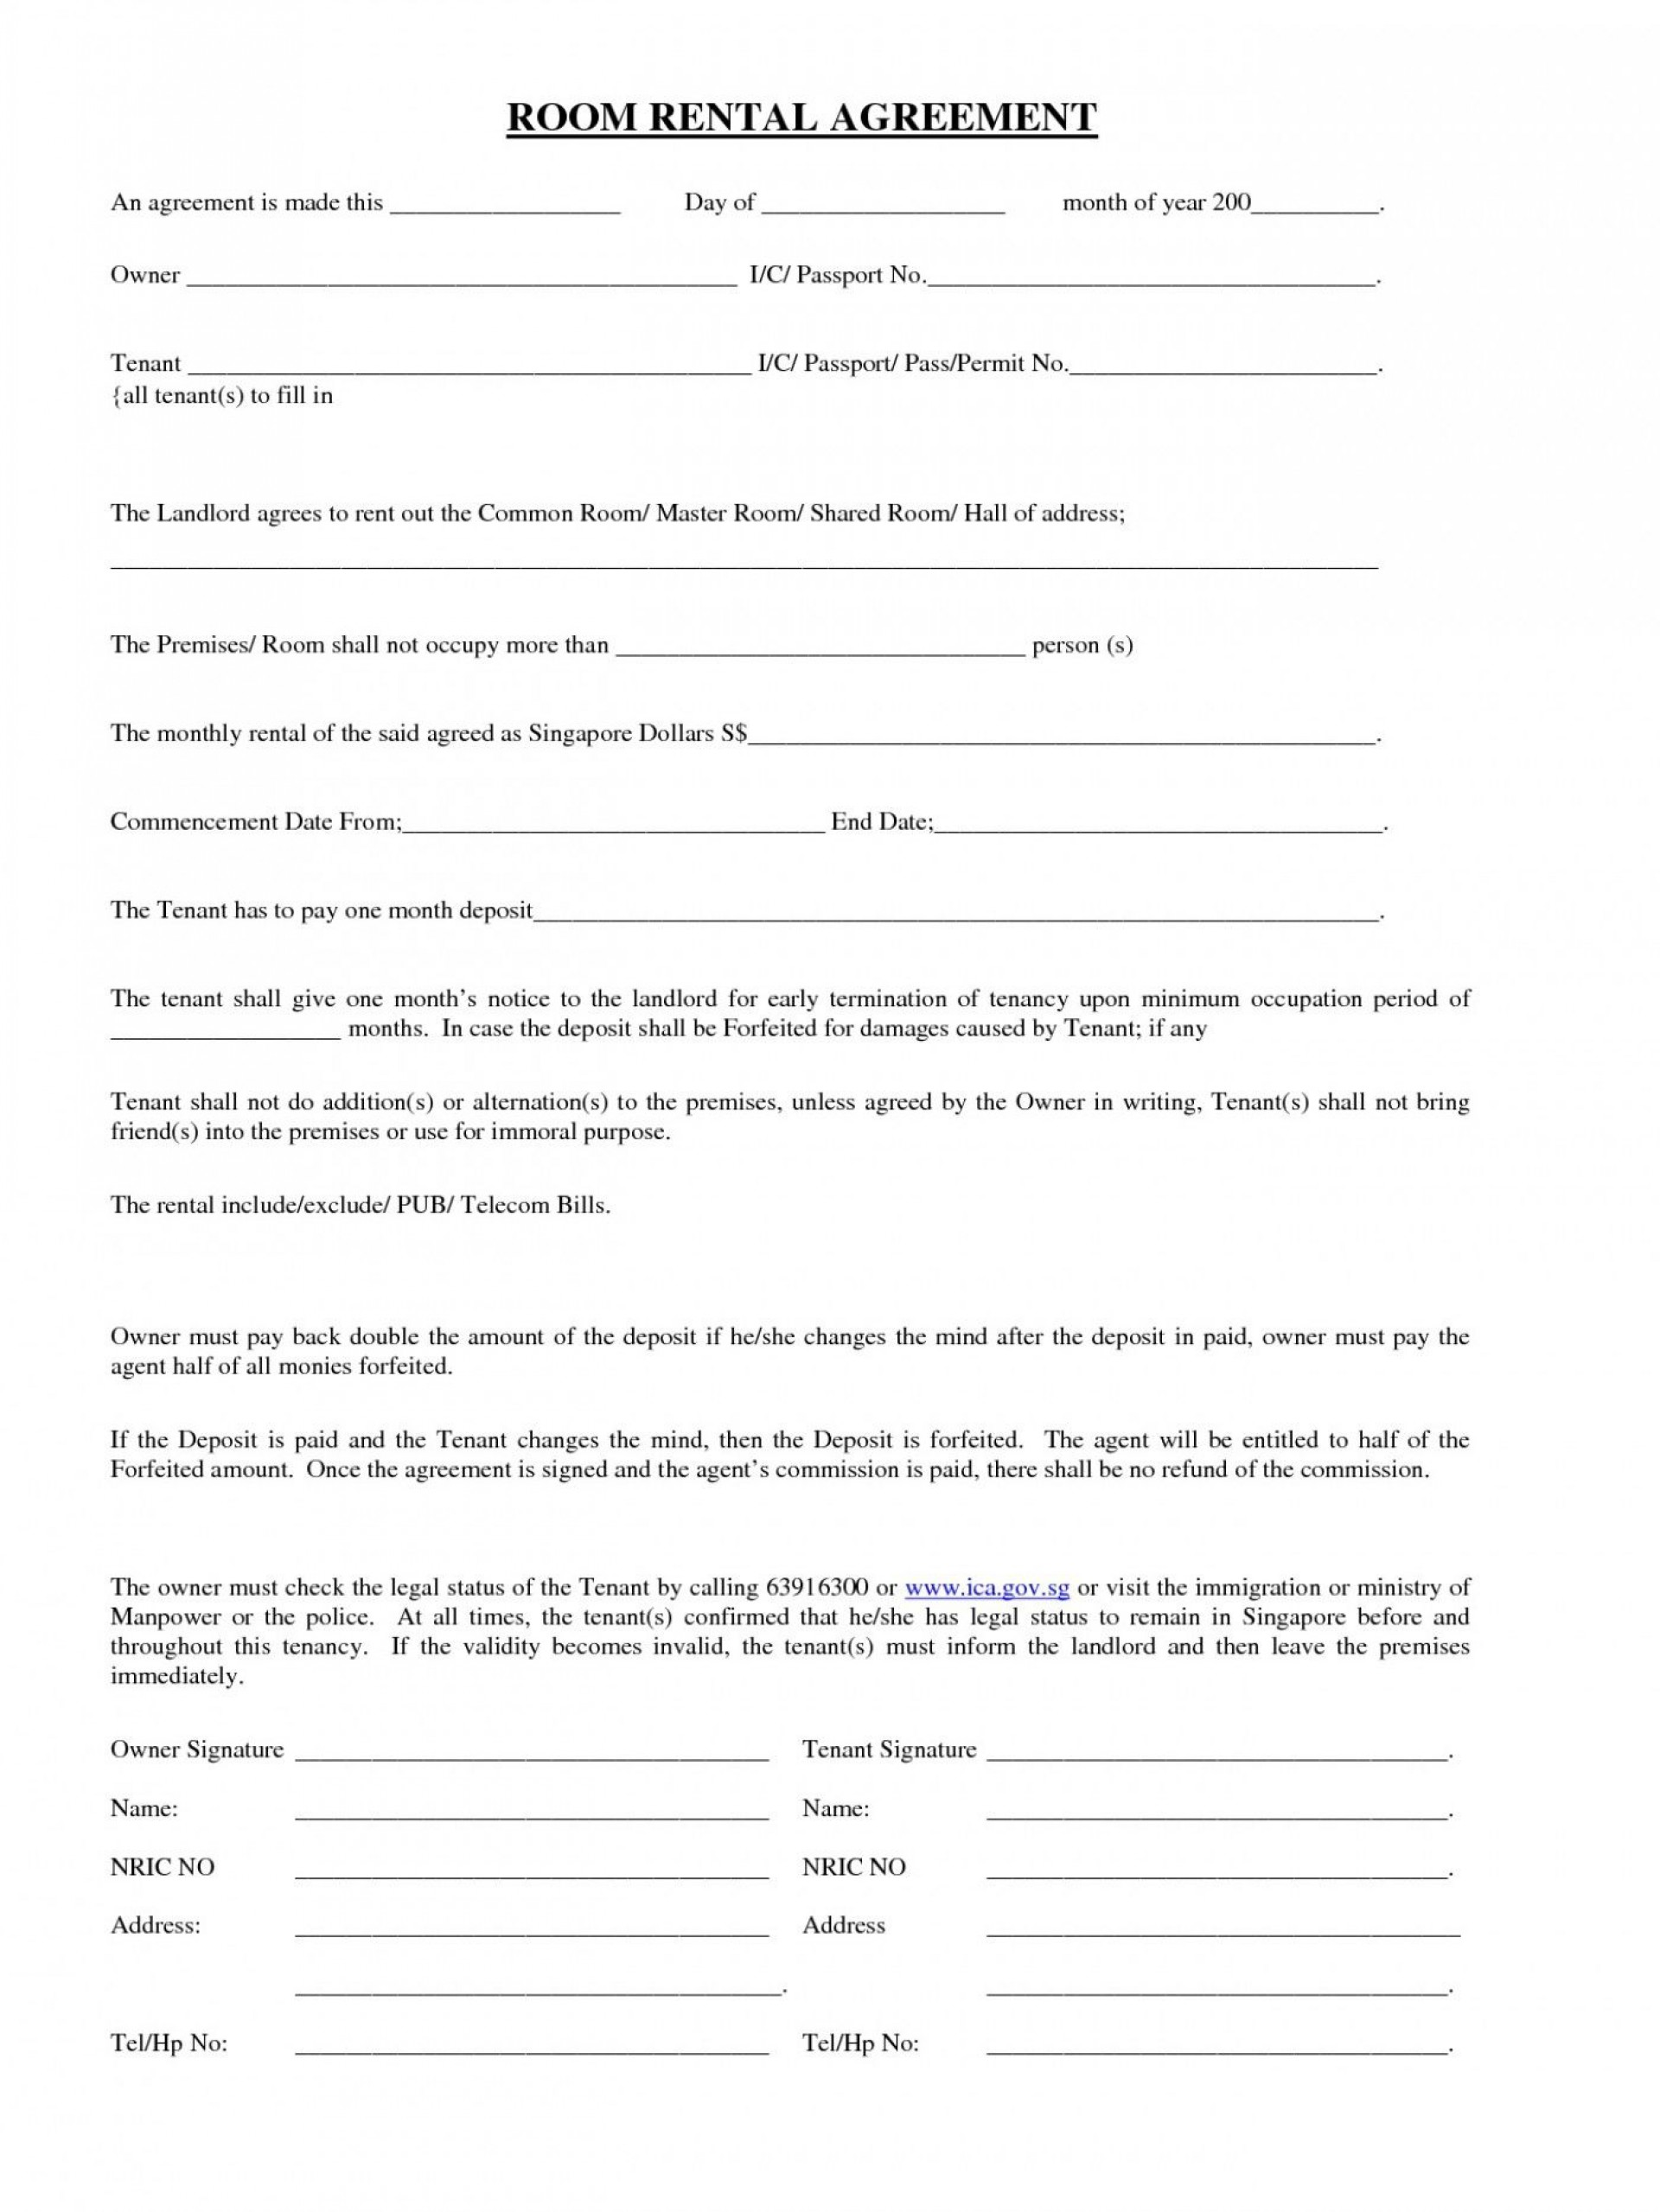 008 Impressive Free Sublease Agreement Template South Africa Sample  Simple Residential Lease Word Download1920